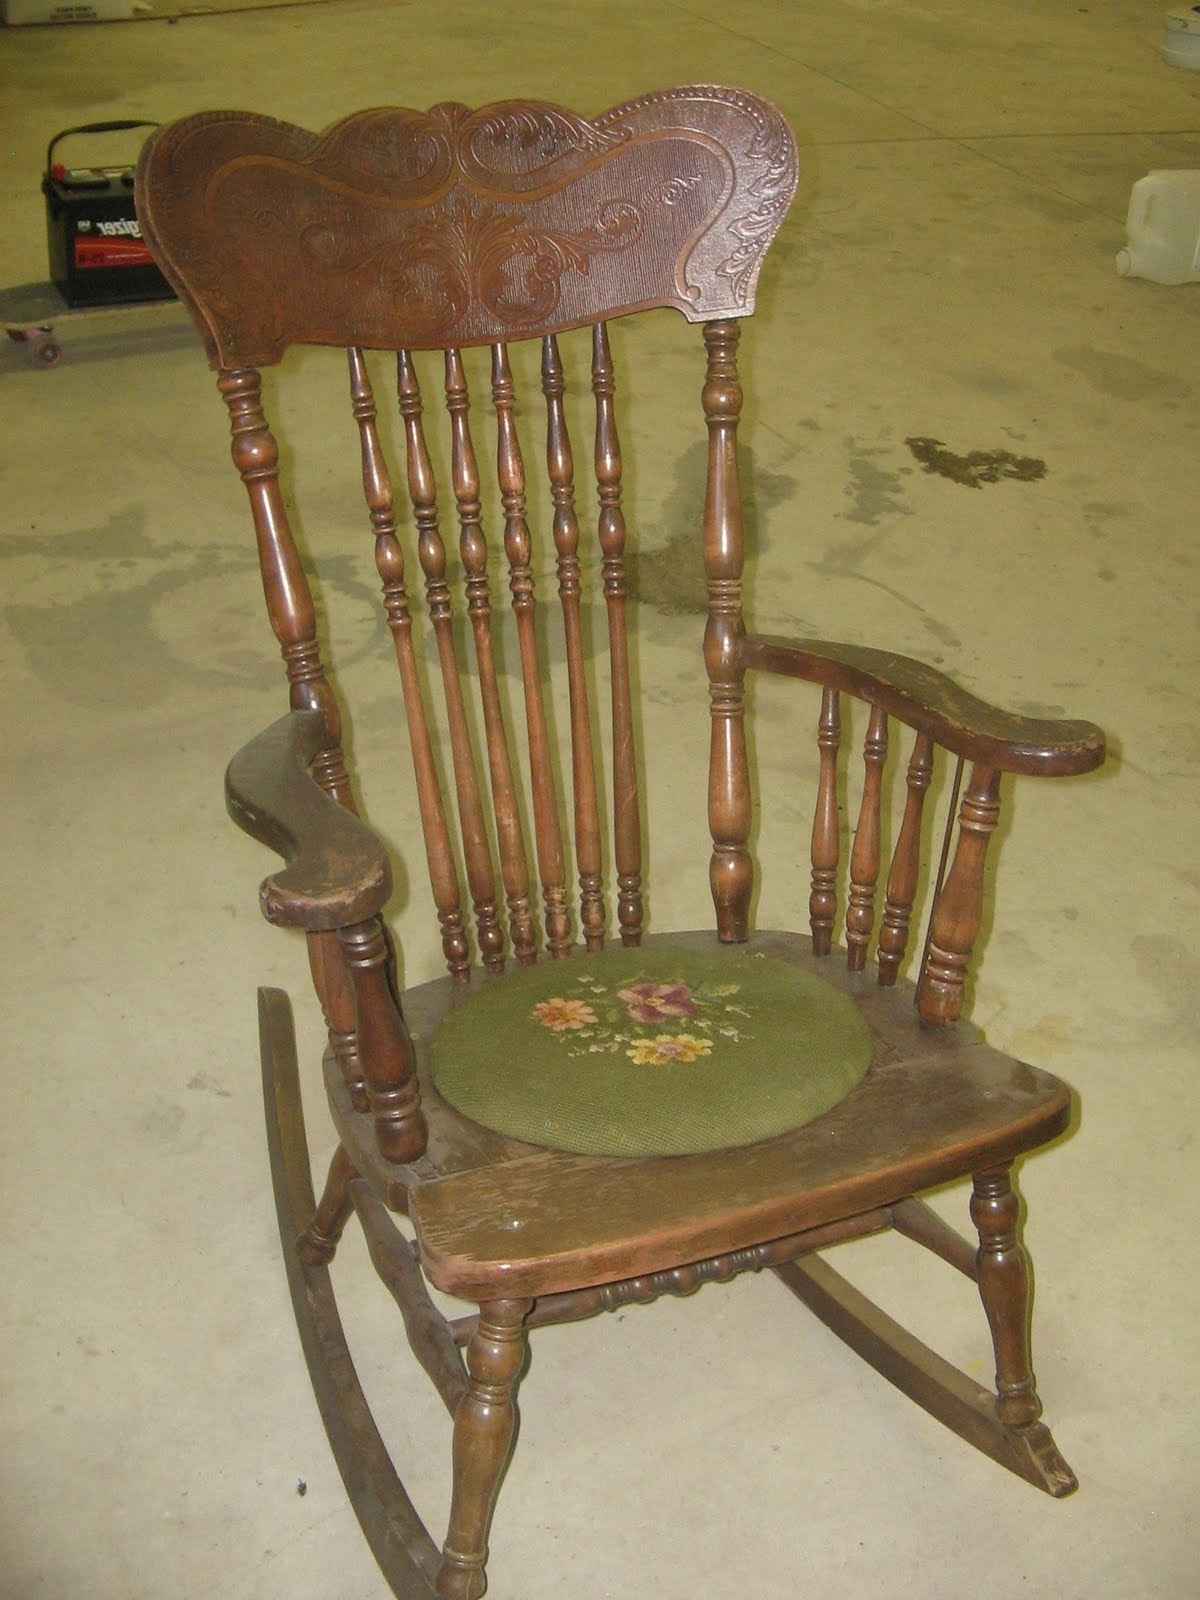 Antique Rocking Chairs Inside Well Liked Ideas Antique Rocking Chairs — Weekly Geek Design : Antique Rocking (View 2 of 15)